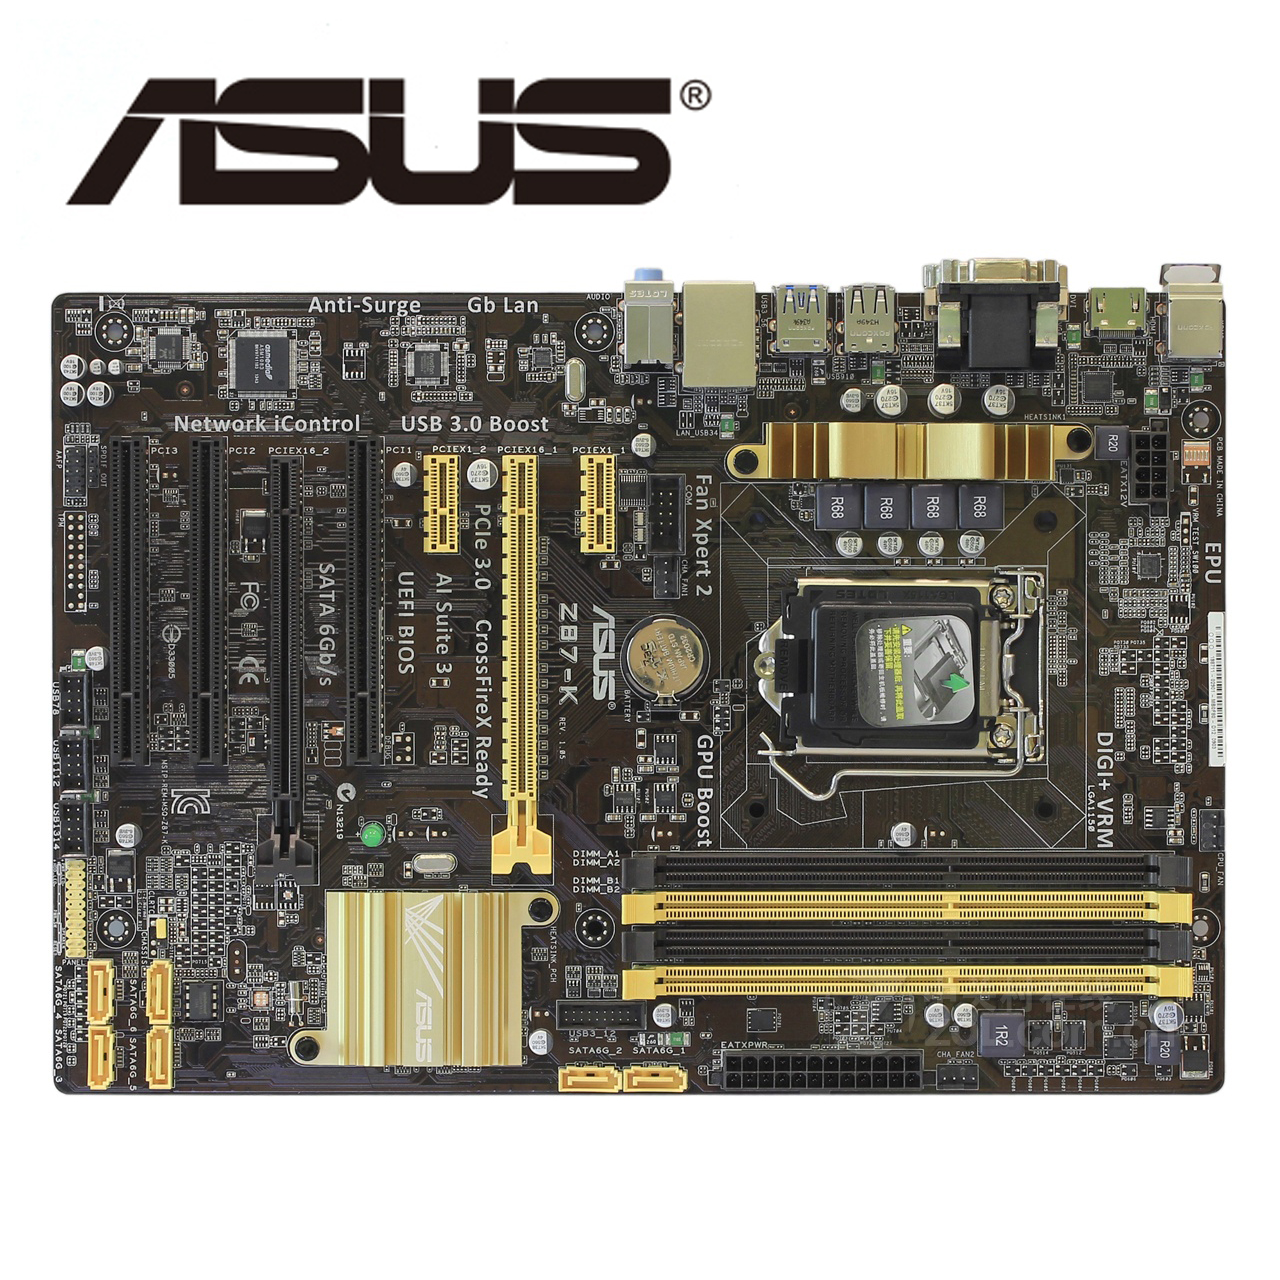 LGA1150 DDR3 Z87 For ASUS Z87-k 100% Original Motherboard32G Z87K Desktop Mainboard Mother Board USB3.0 SATA III VGA OC Used